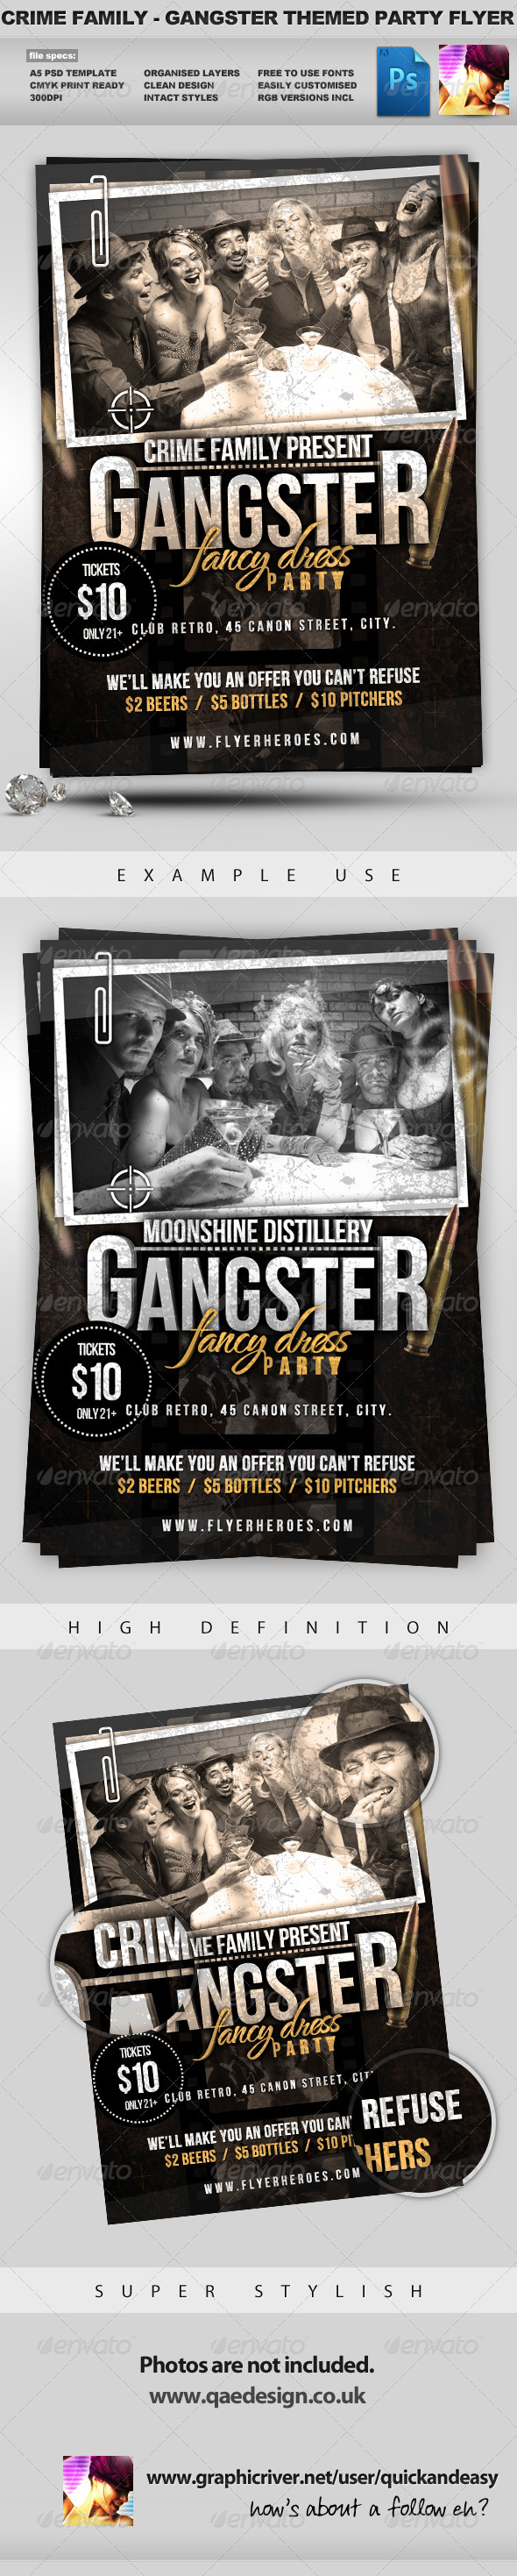 Crime Family - Gangster Themed Flyer Template - Clubs & Parties Events